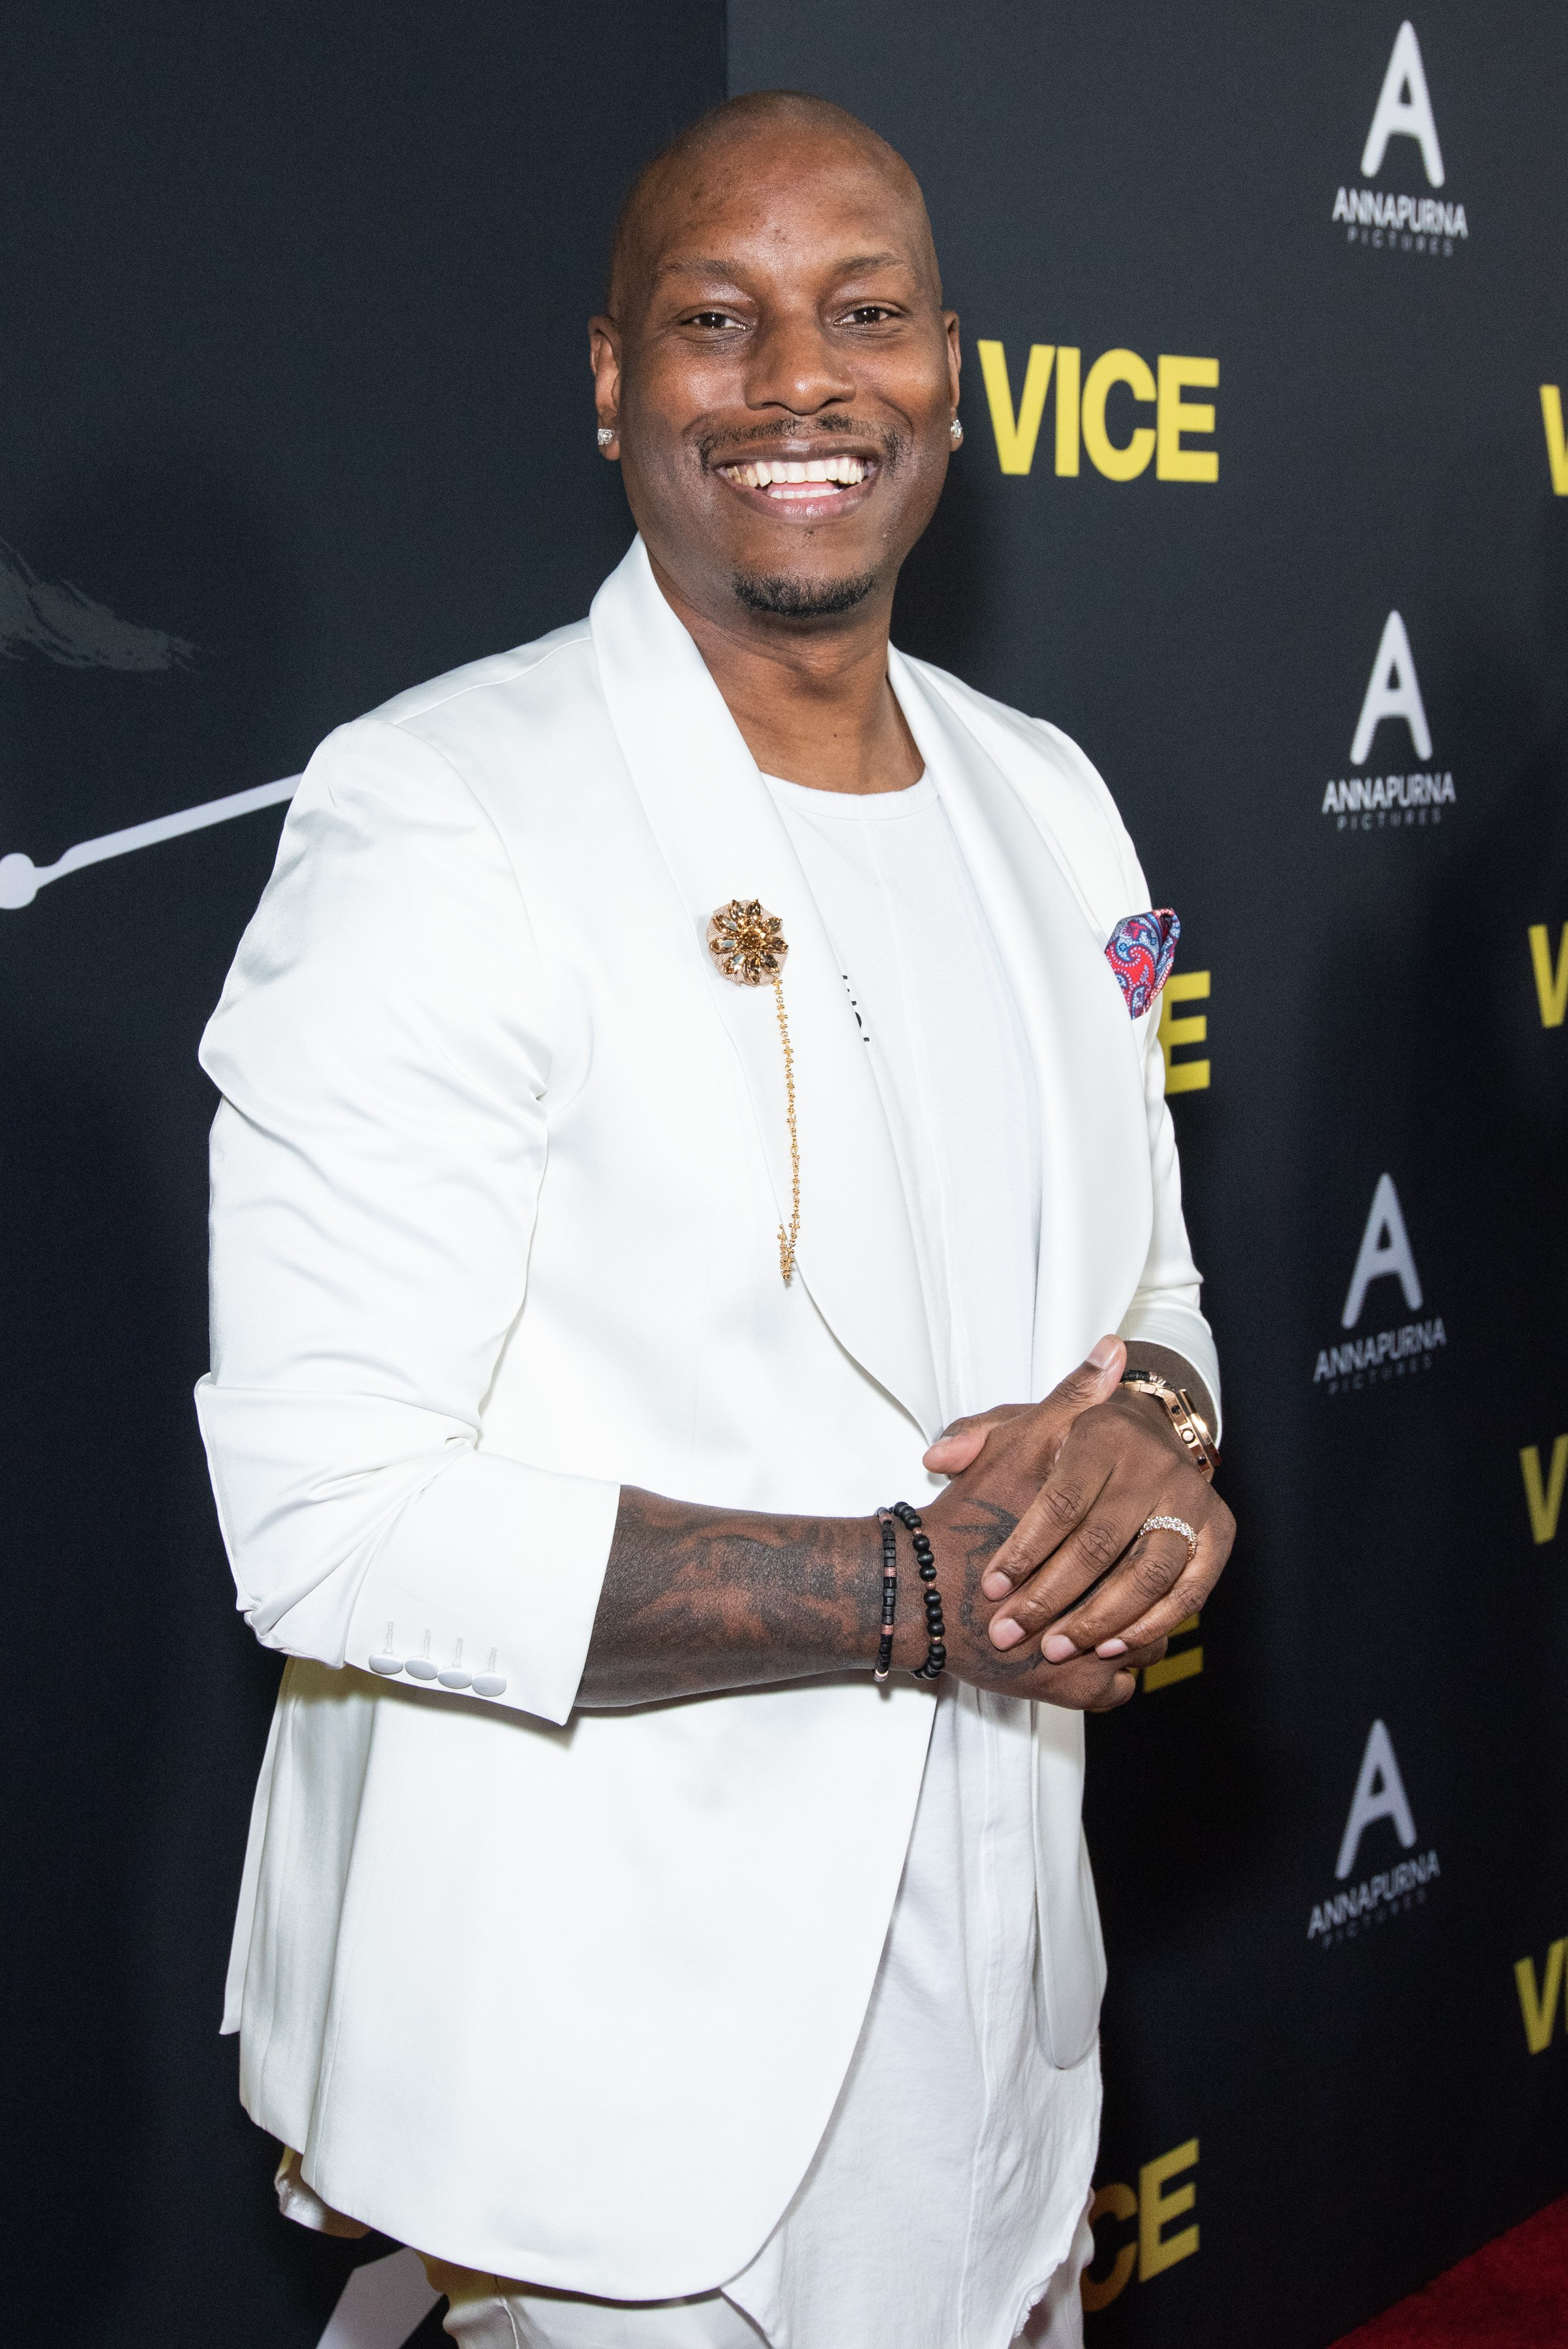 Tyrese To Star As Teddy Pendergrass In New Biopic